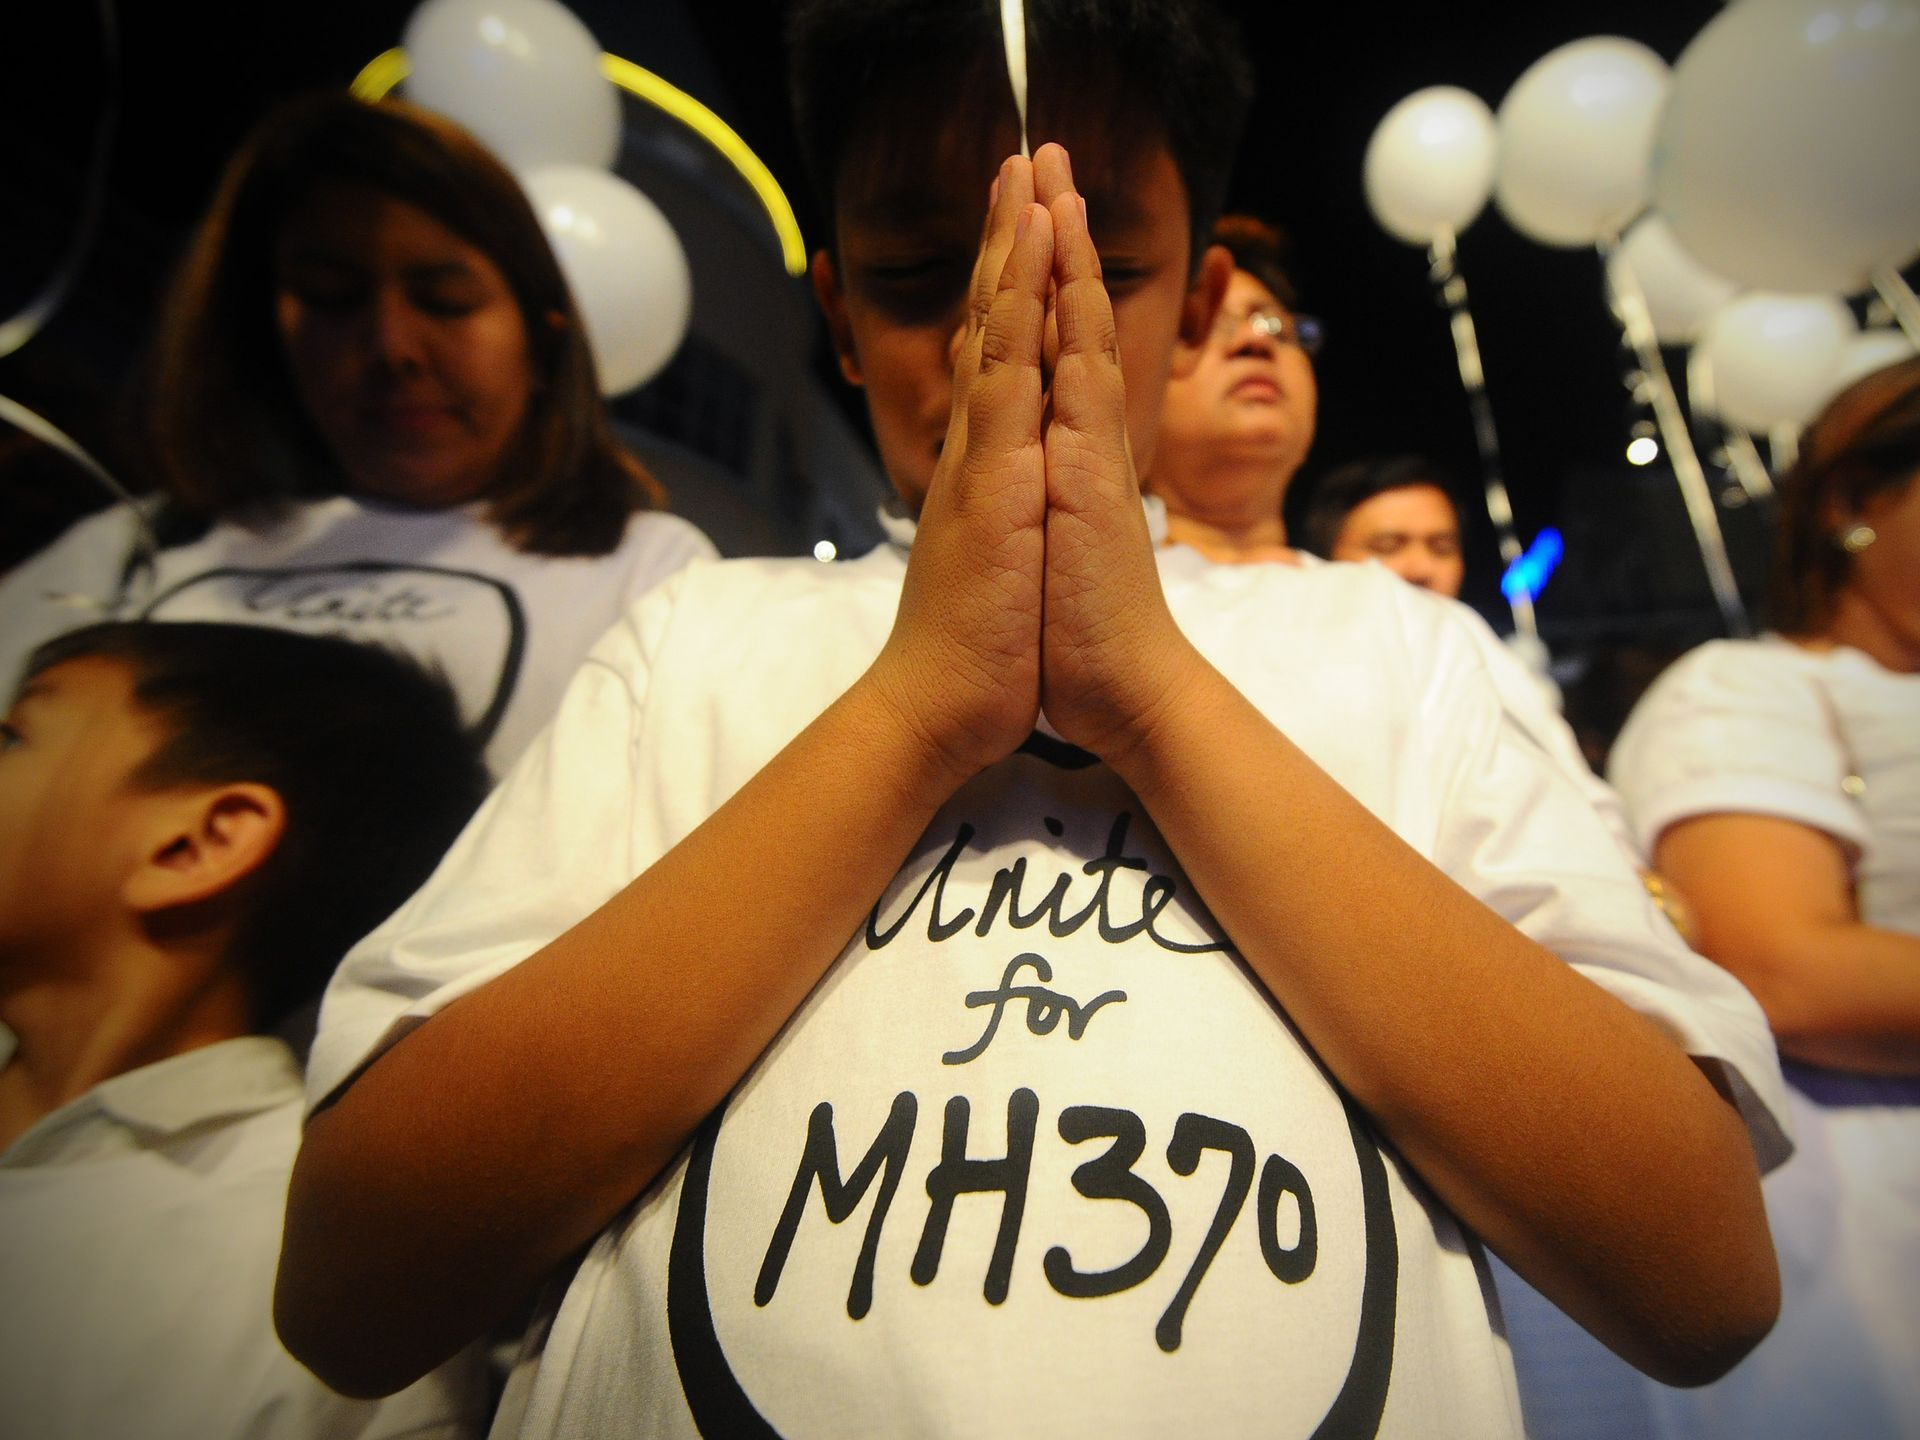 Prayer for the victims and families of the Malaysian